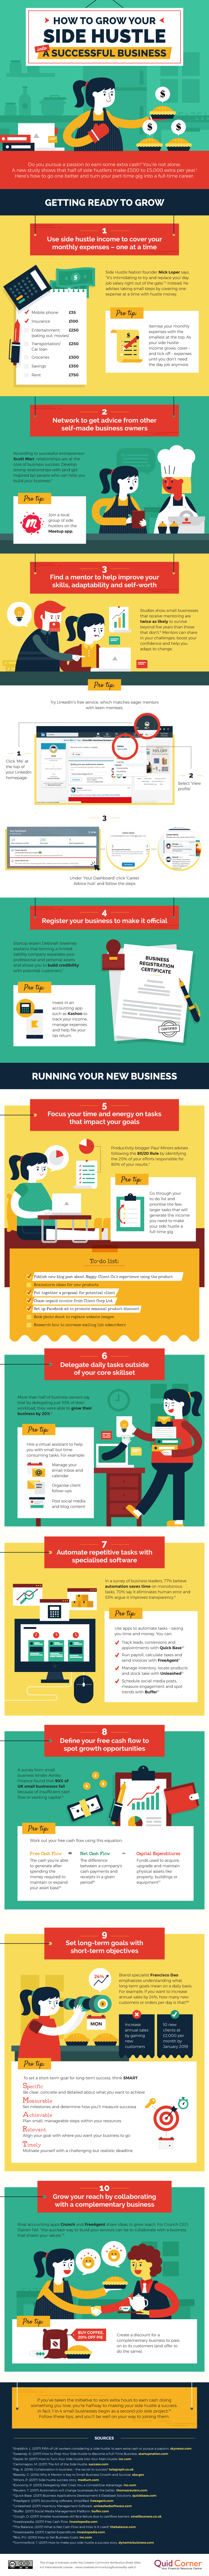 Infographic about opportunities for side hustlers